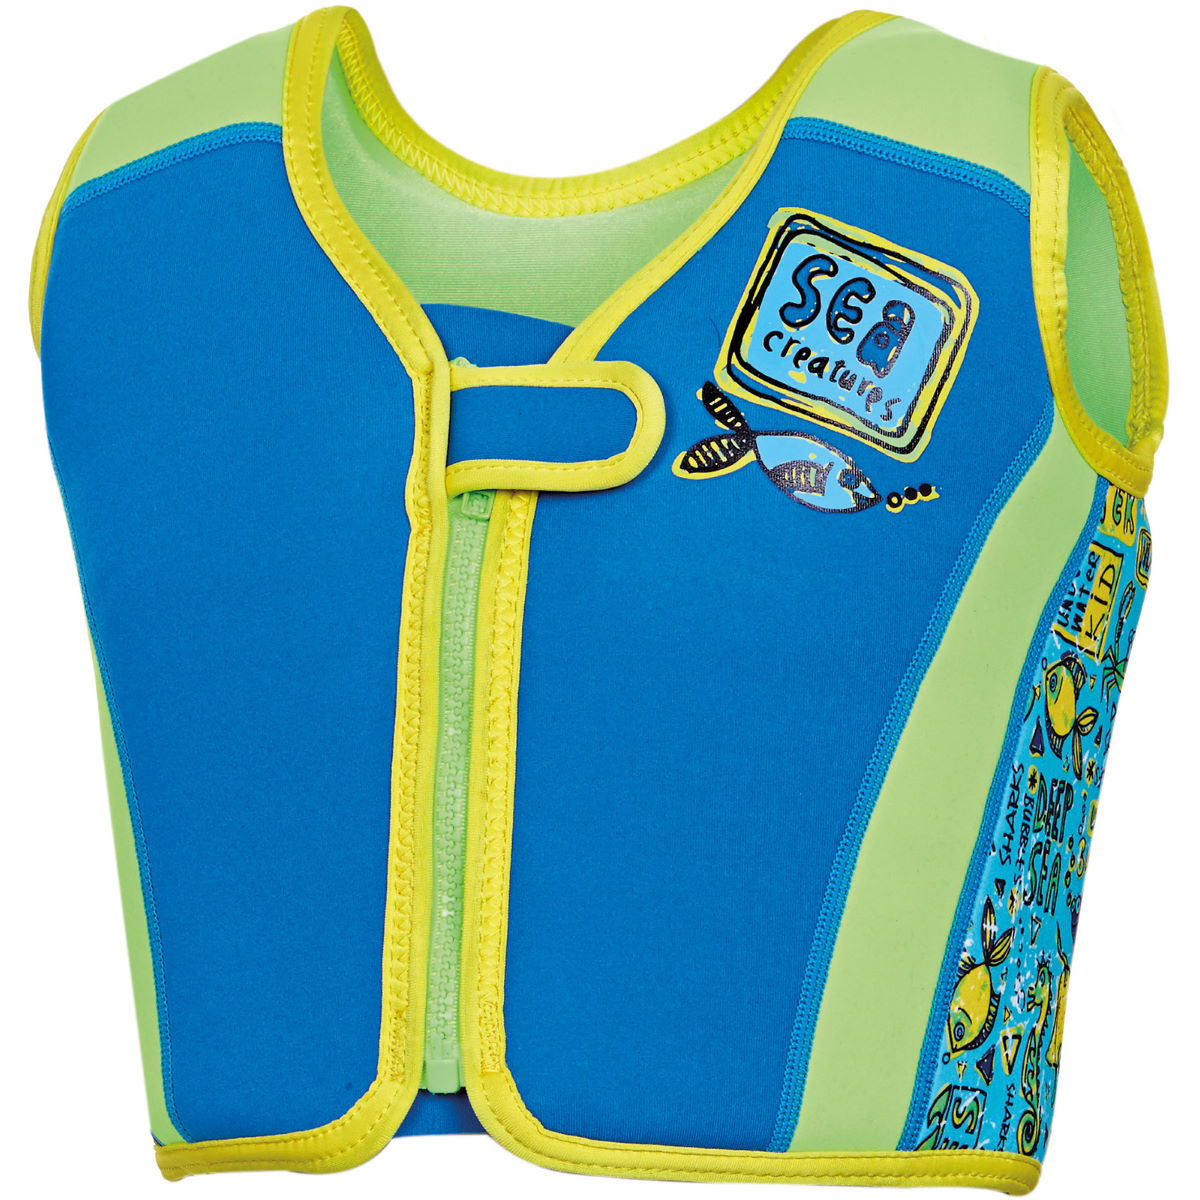 Gilet de flottaison Enfant Zoggs Deep Sea Swim - 2-3 years Bleu